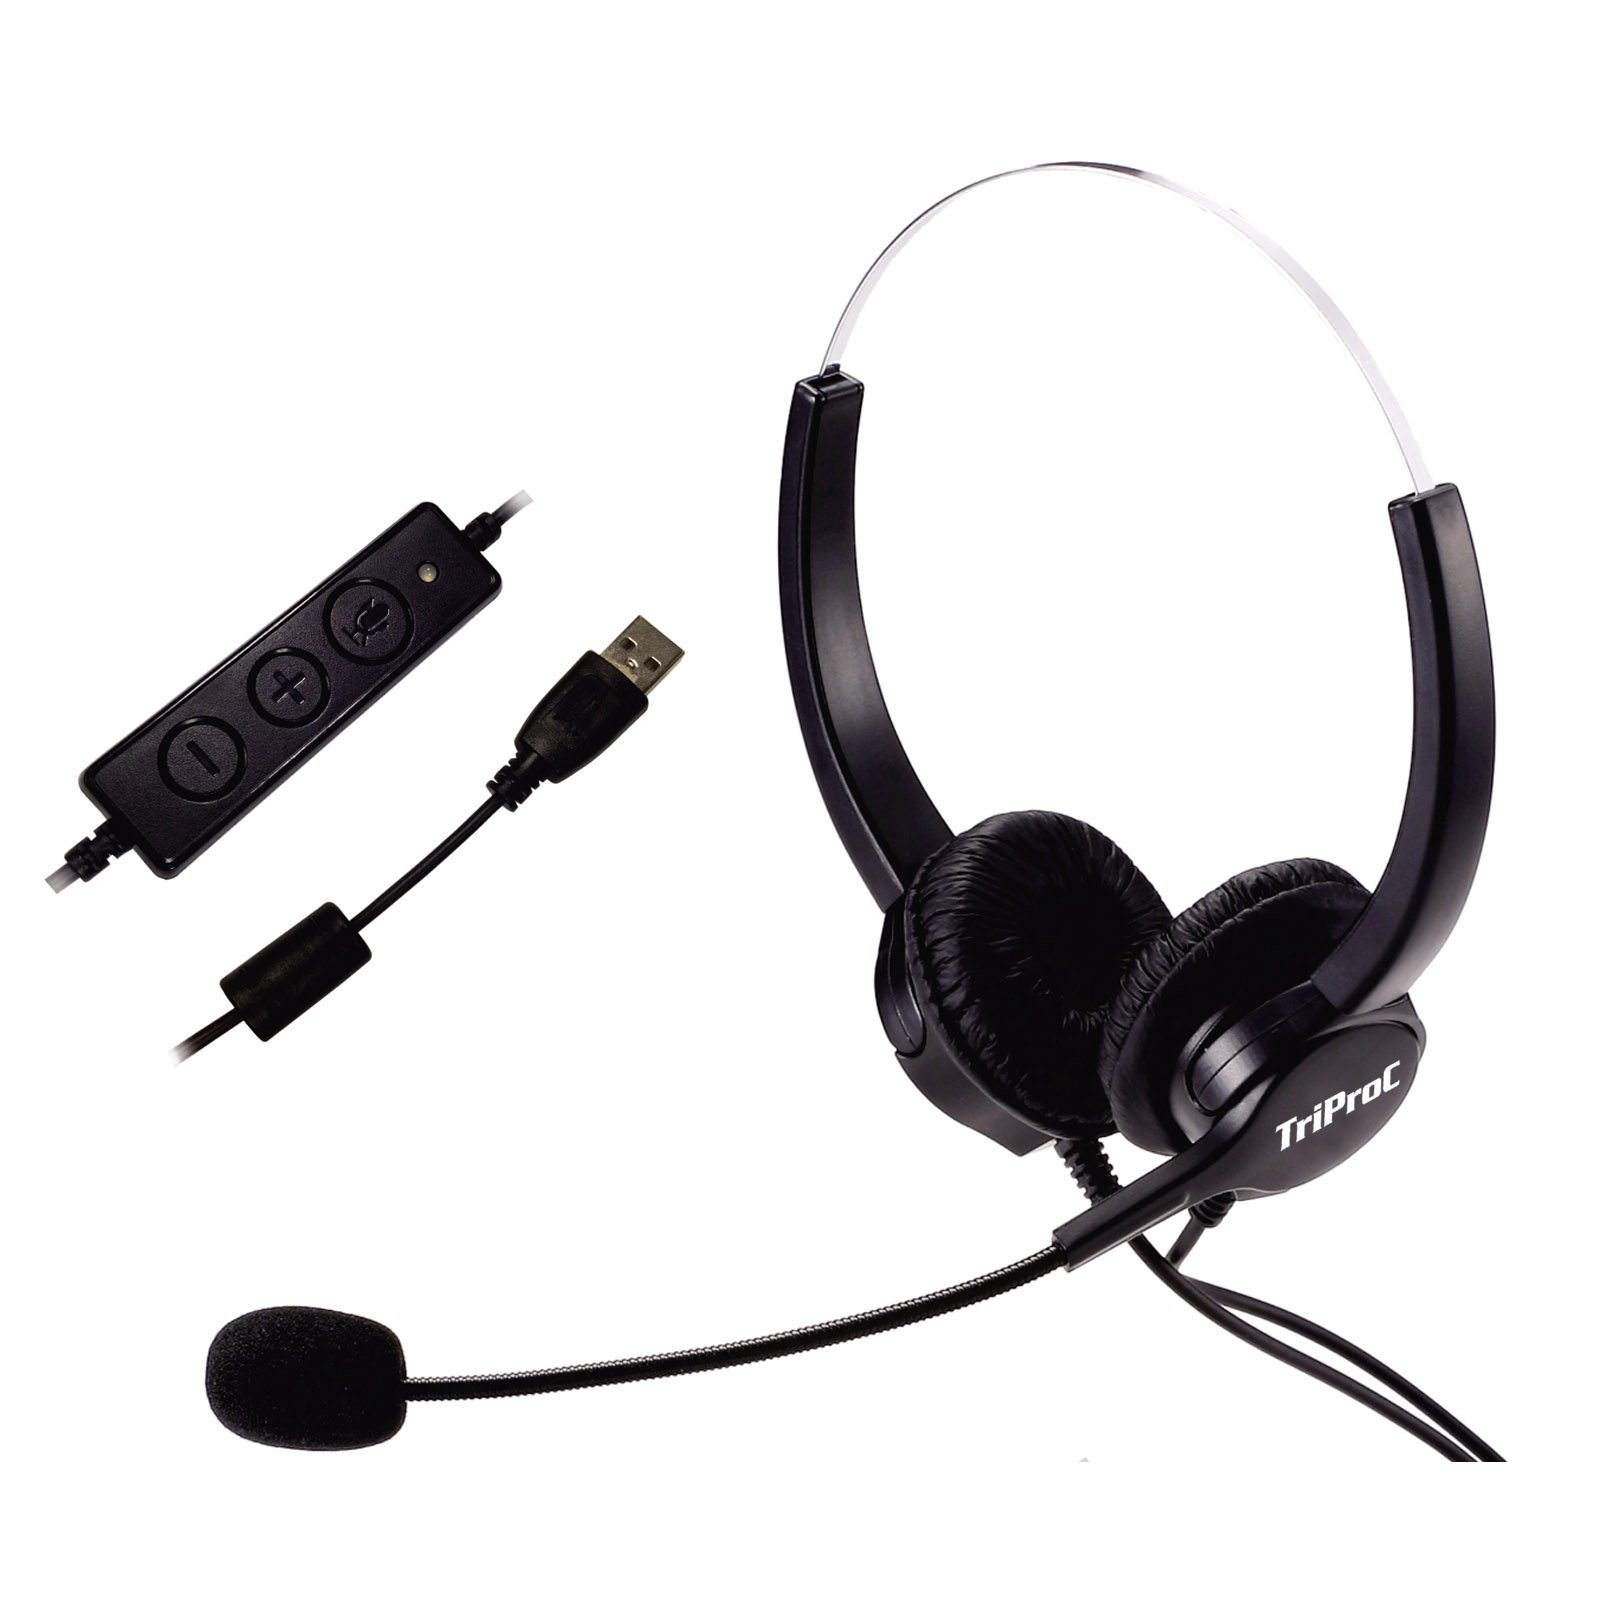 TRIPROC Binaural USB Computer Headset for Internet Calls, Voip Communication, Skype, Webinar, Softphone, Call Center with Noise Cancelling Microphone and Volume Adjuster